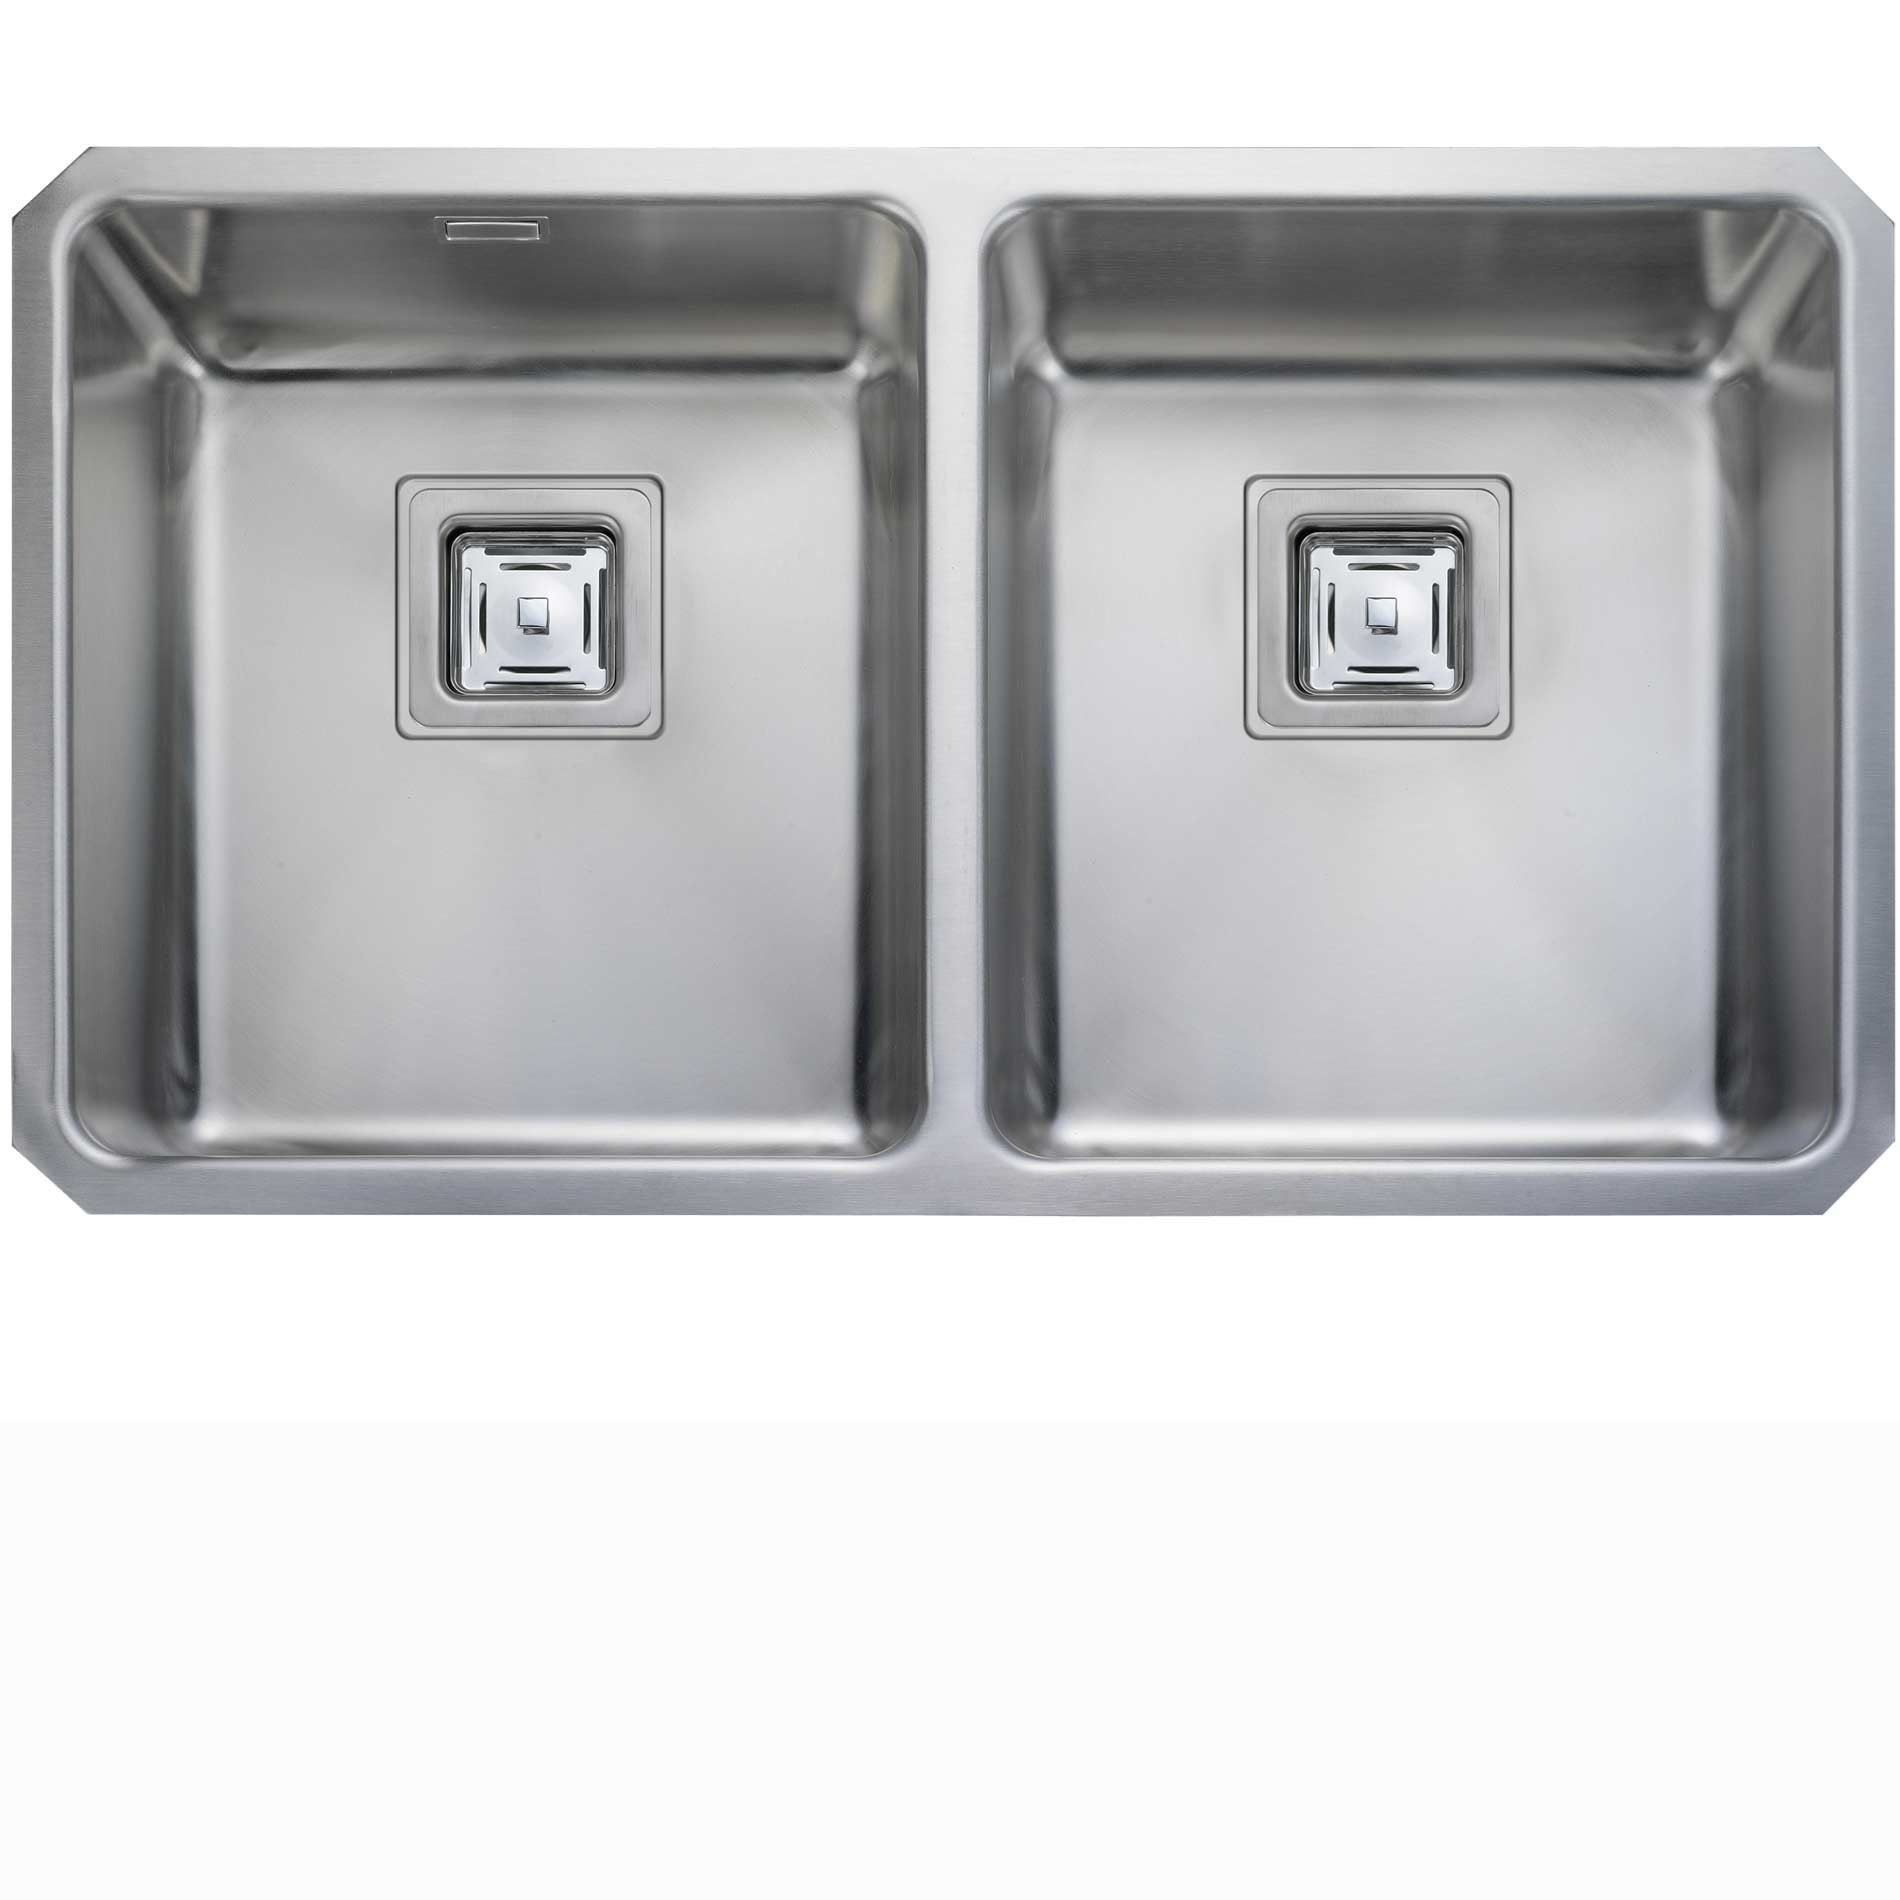 Picture of Atlantic Quad QUB3434 Stainless Steel Sink